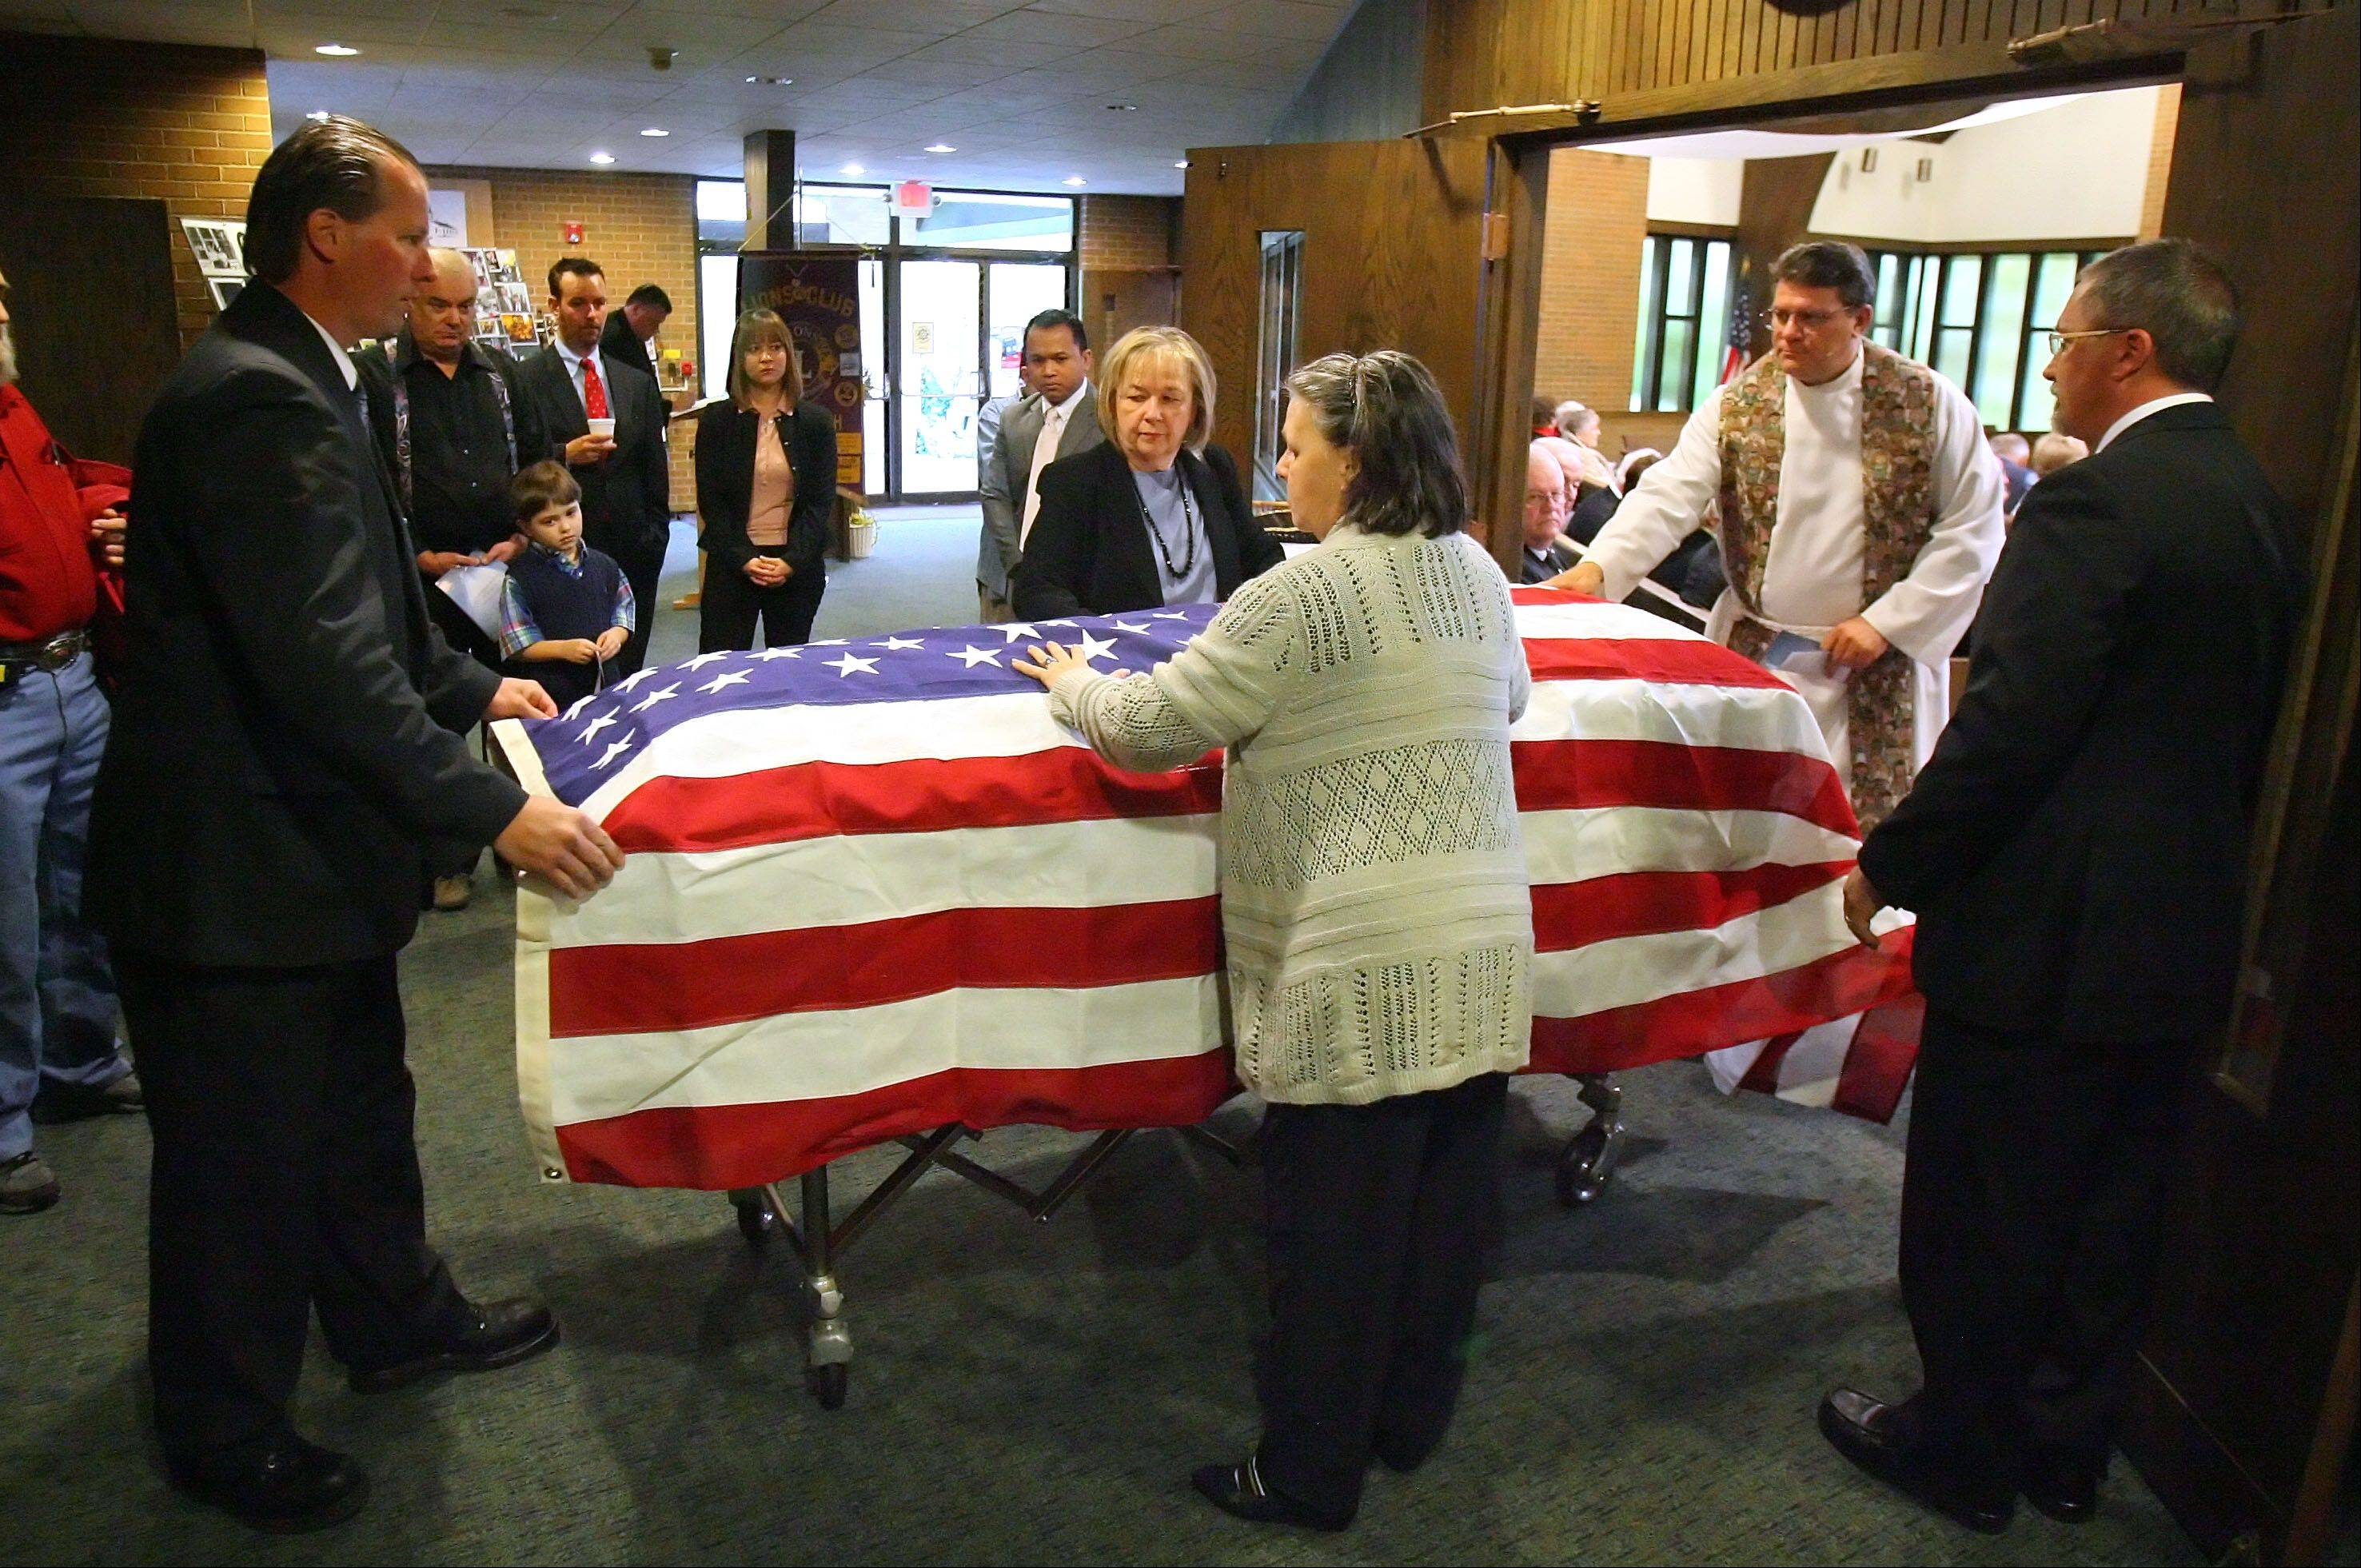 Peggy Loomis Spencer of Leander, Texas and Nancy Loomis Schroeder of Ingleside, middle, spread the American flag over the casket of their father Spencer Loomis during his funeral Thursday at St. Peter United Church of Christ in Lake Zurich.